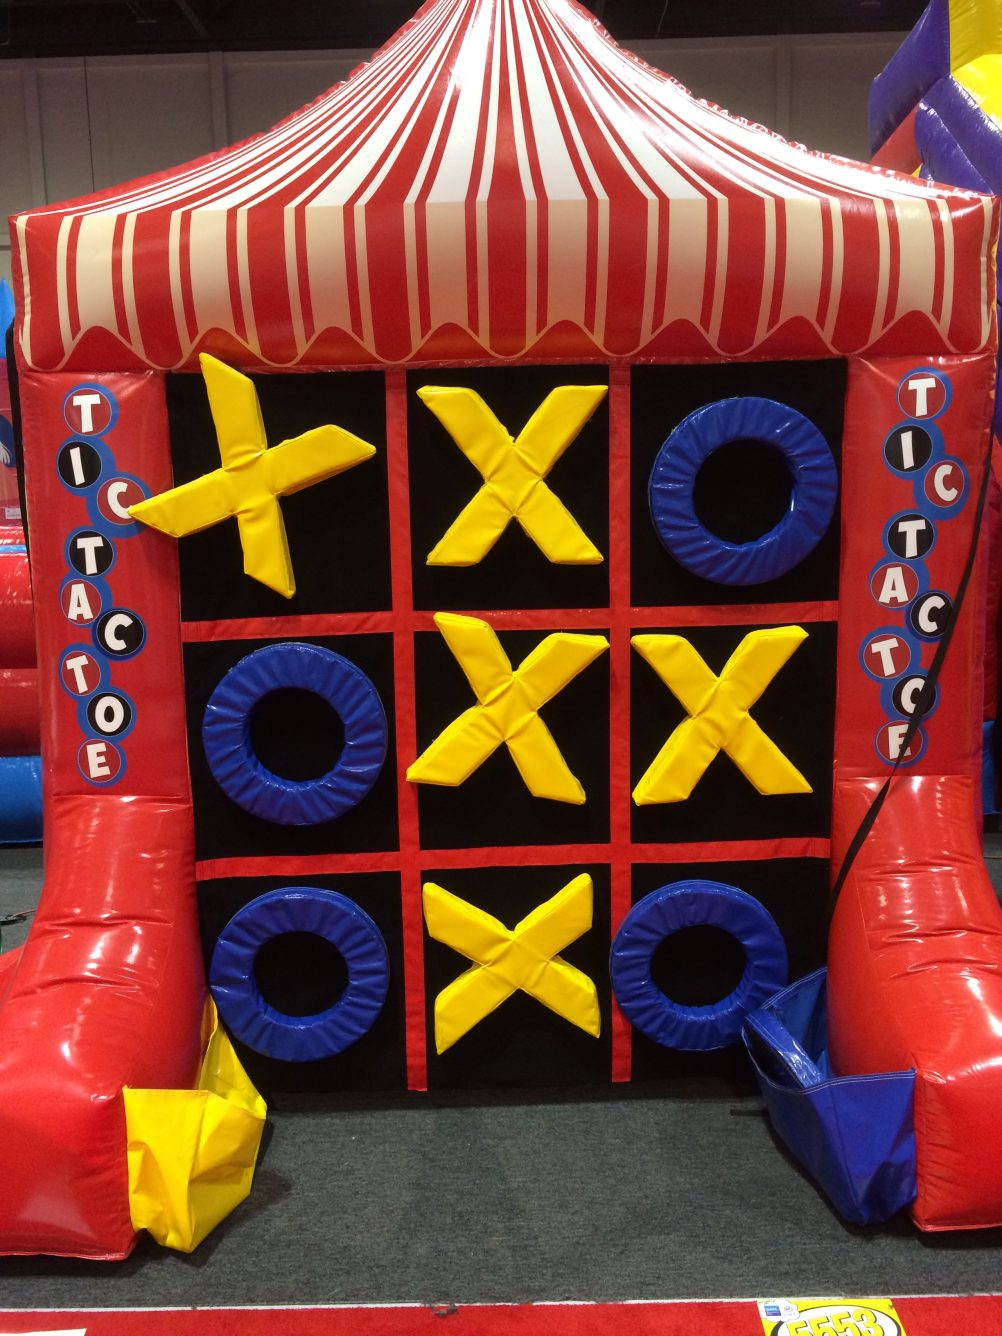 boston_party_entertainment_carnival_picnic_games_giant_tictactoe1